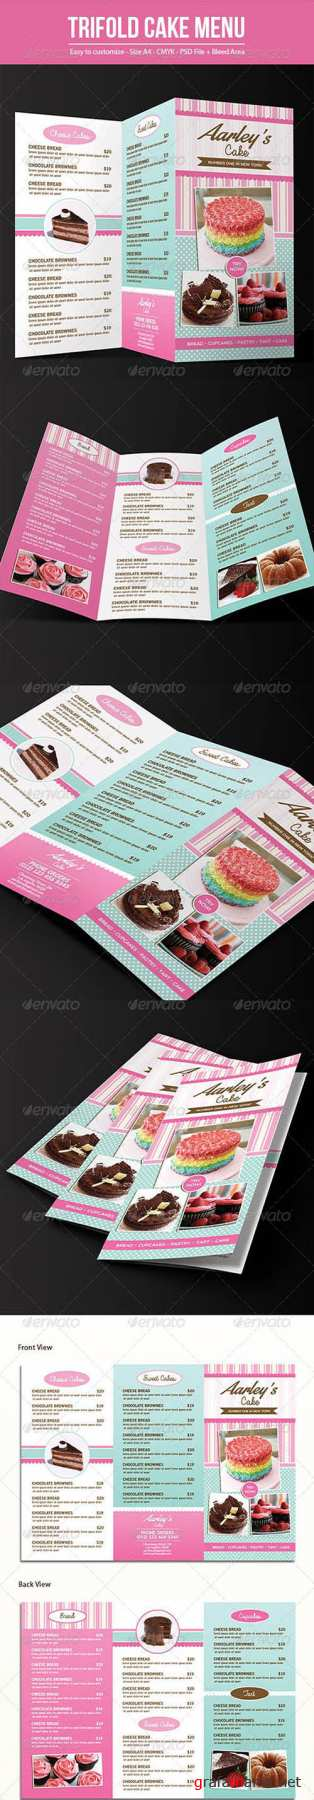 GR - Trifold Cake Menu + Business Card 7642416